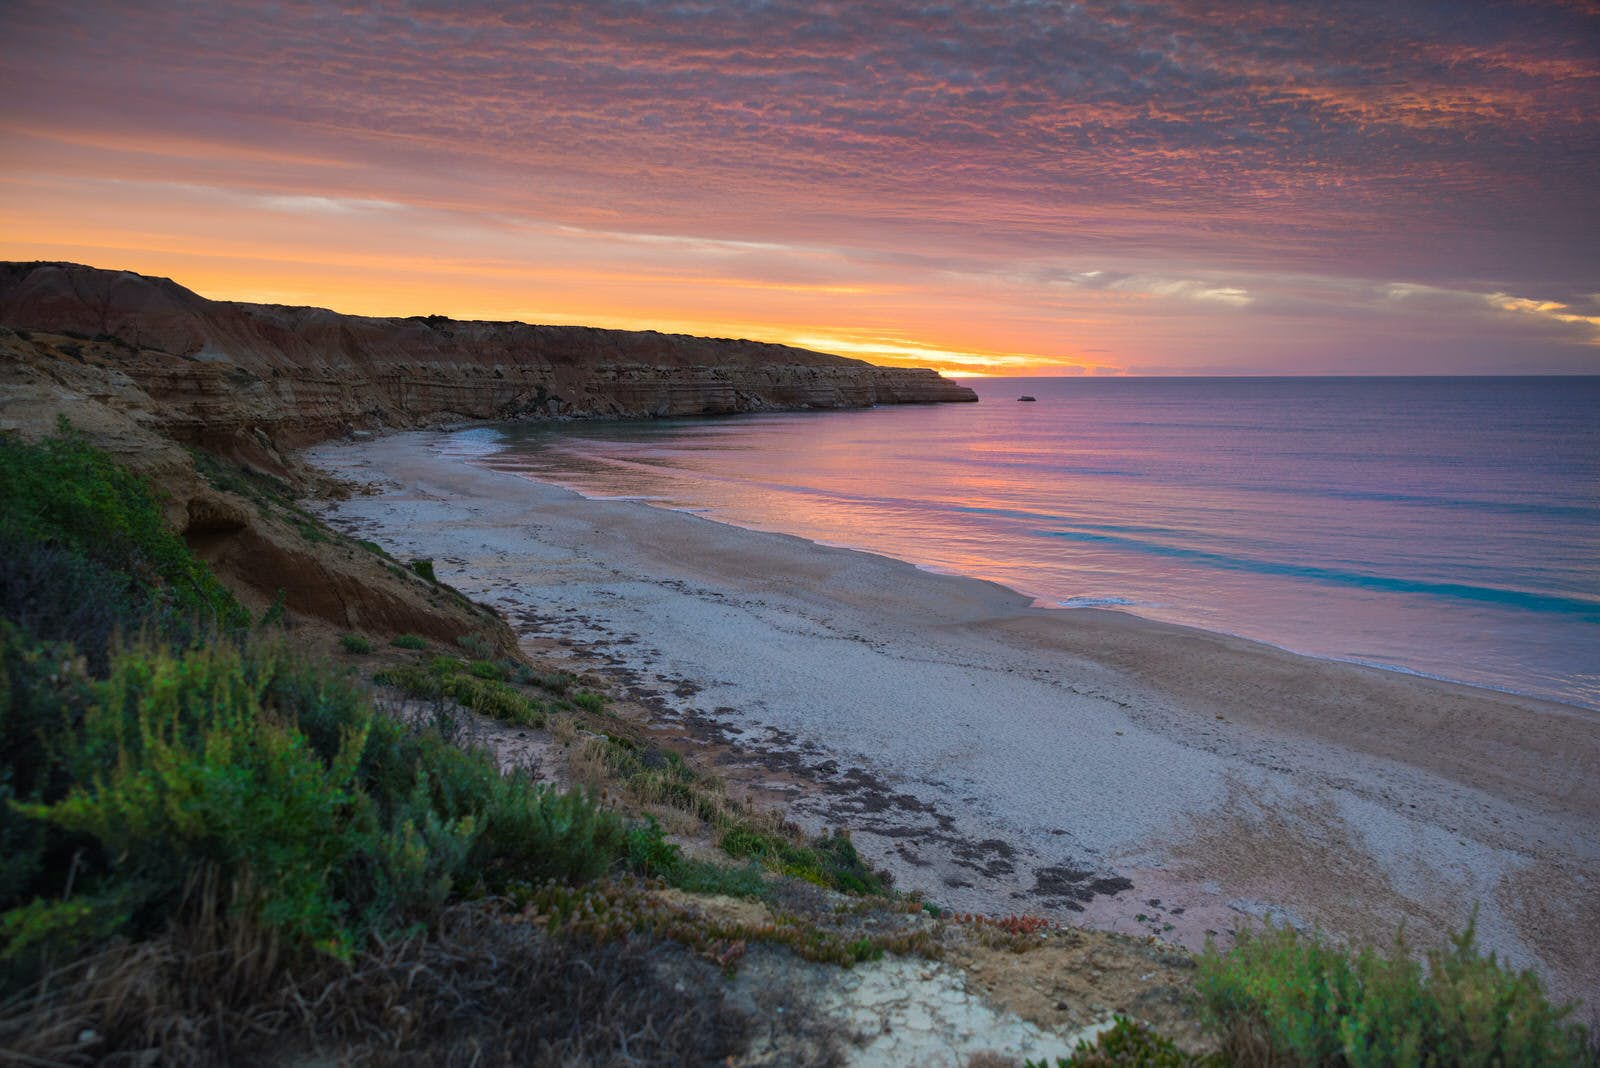 Nude Beach Videos the 6 best nudist beaches in australia - lonely planet